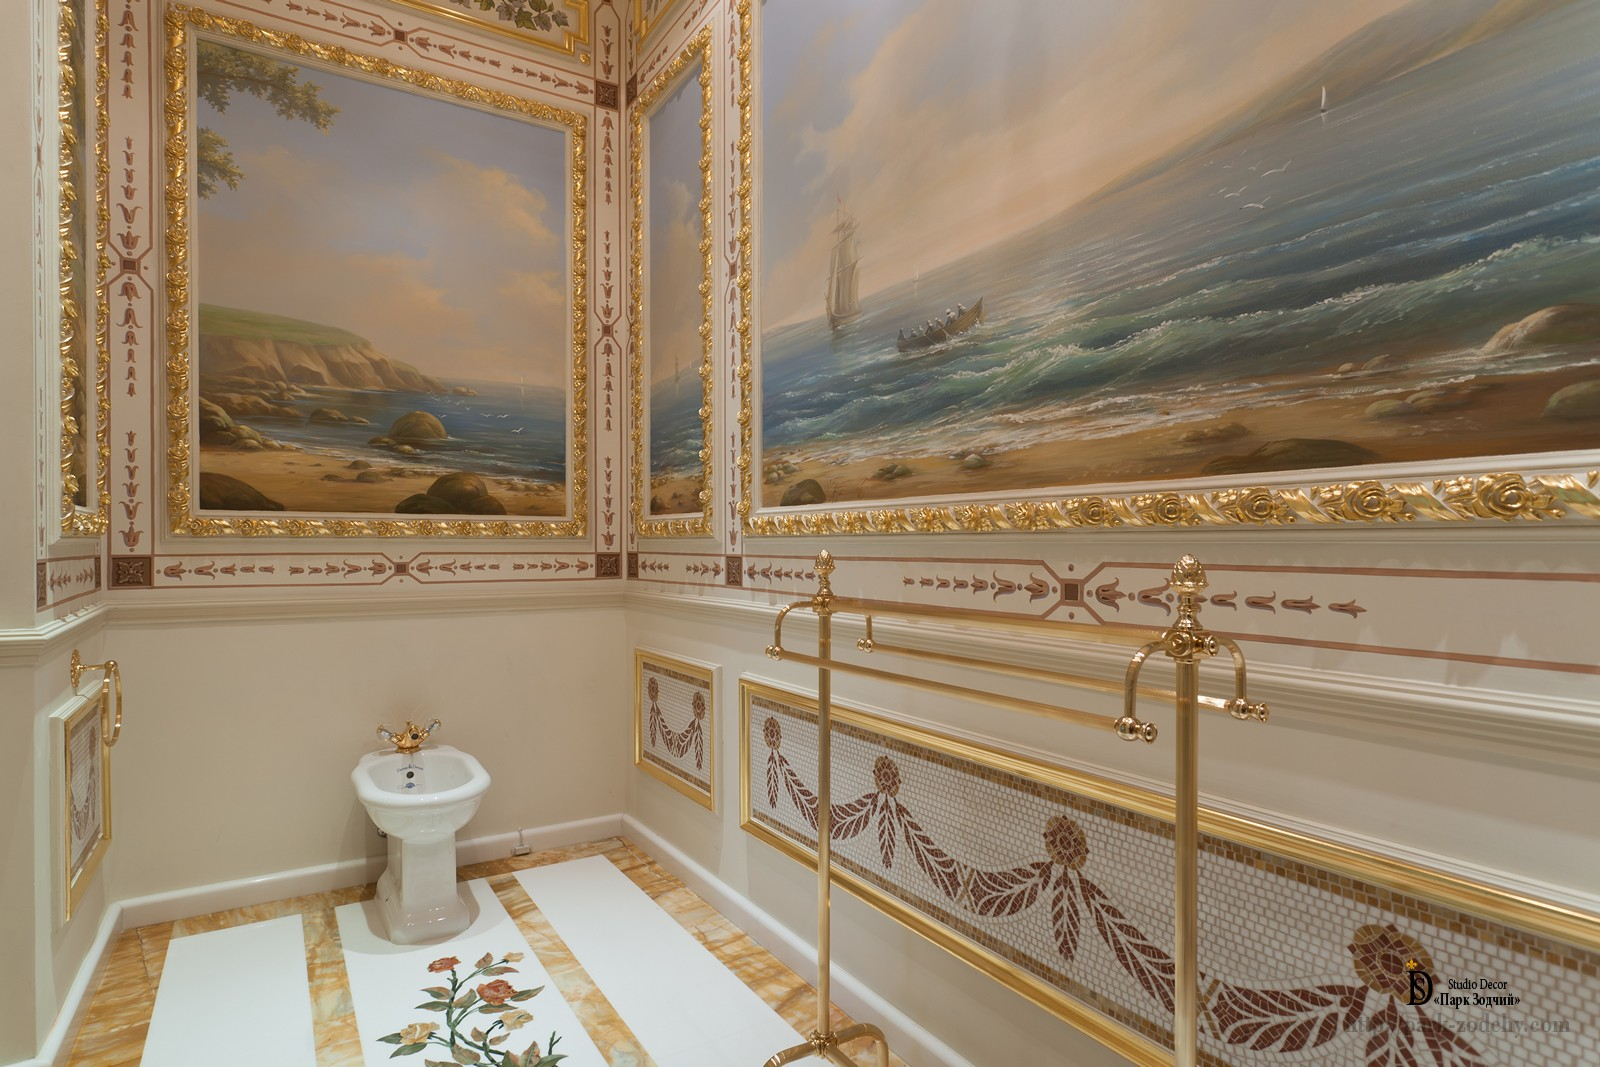 Bathroom with painting and gilding stucco